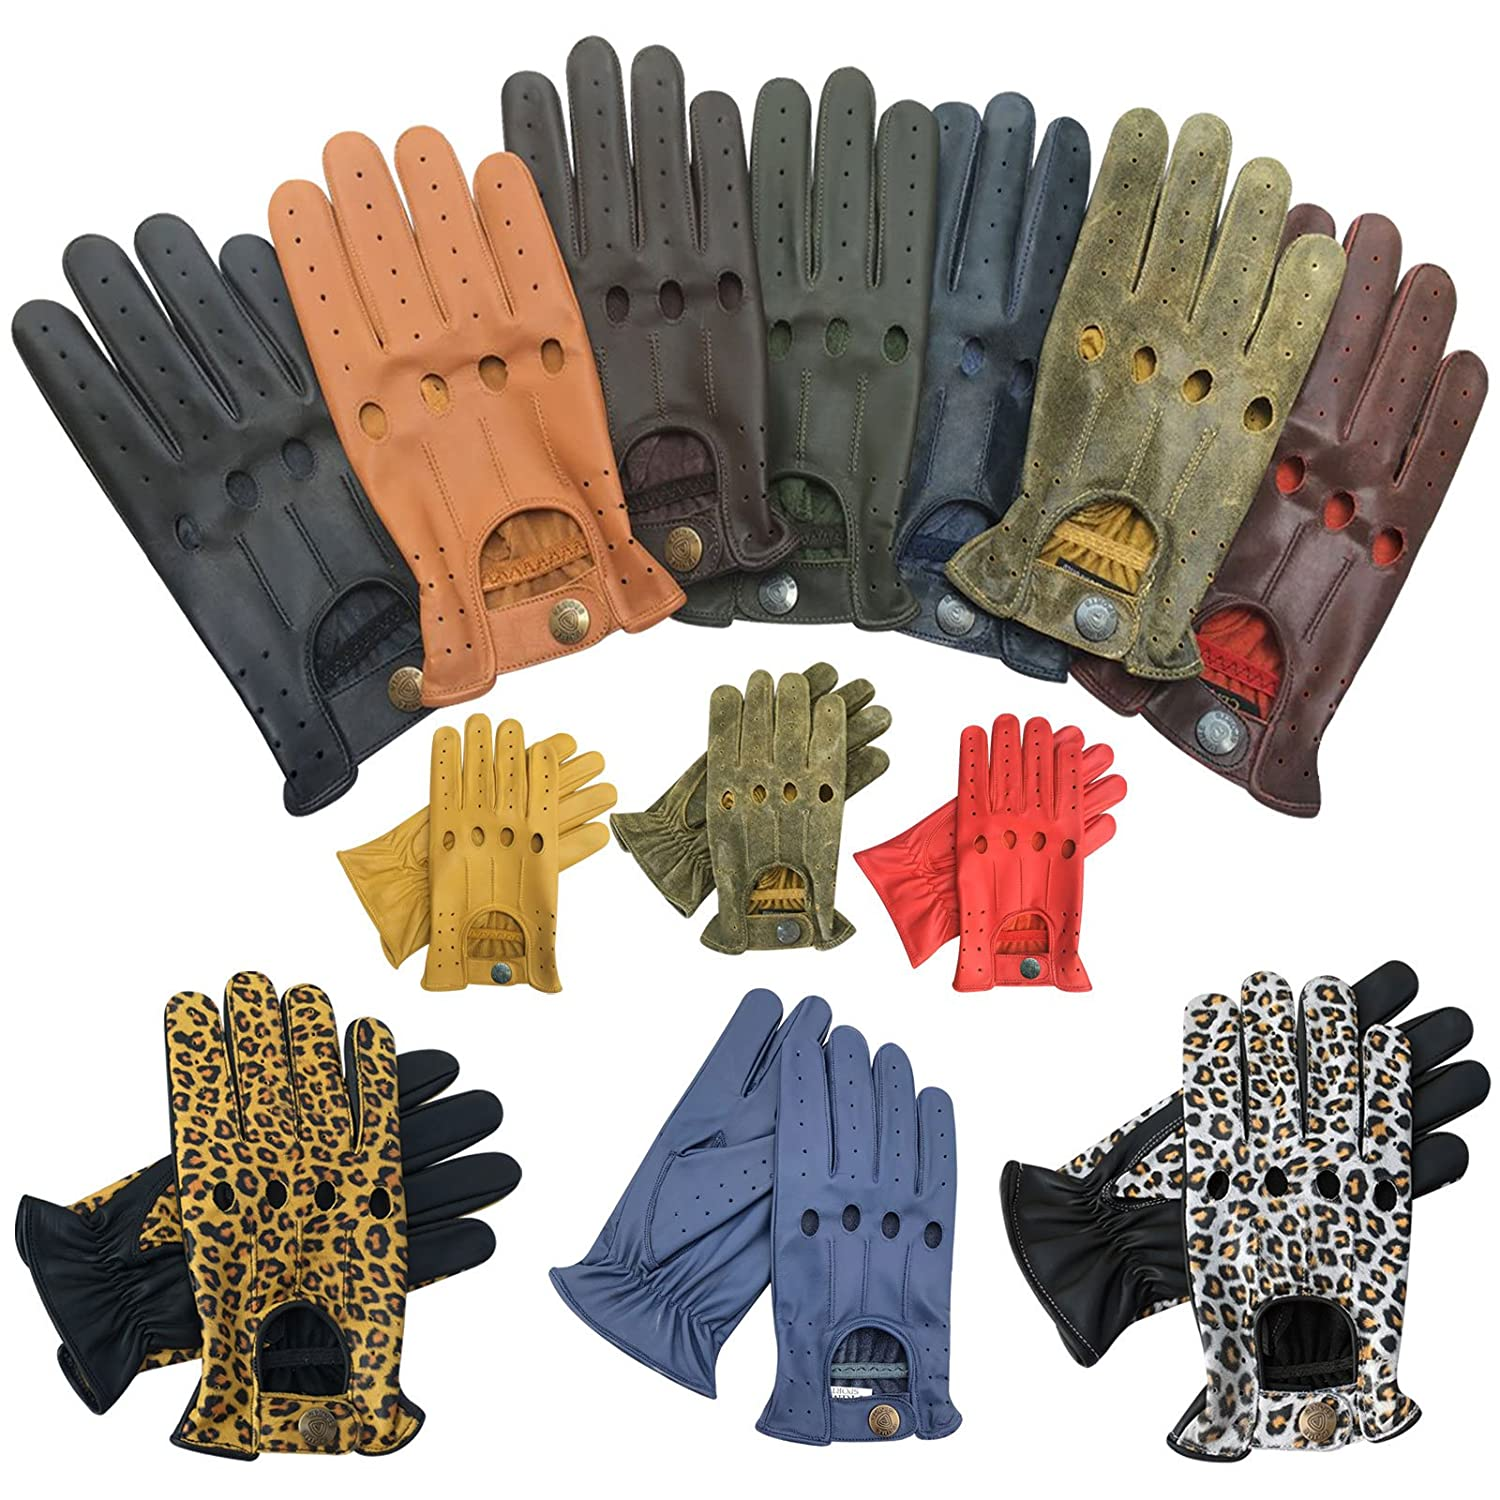 Mens leather driving gloves australia - Prime Leather Top Quality Real Soft Leather Men S Without Lining Driving Gloves Retro Glove In Ten